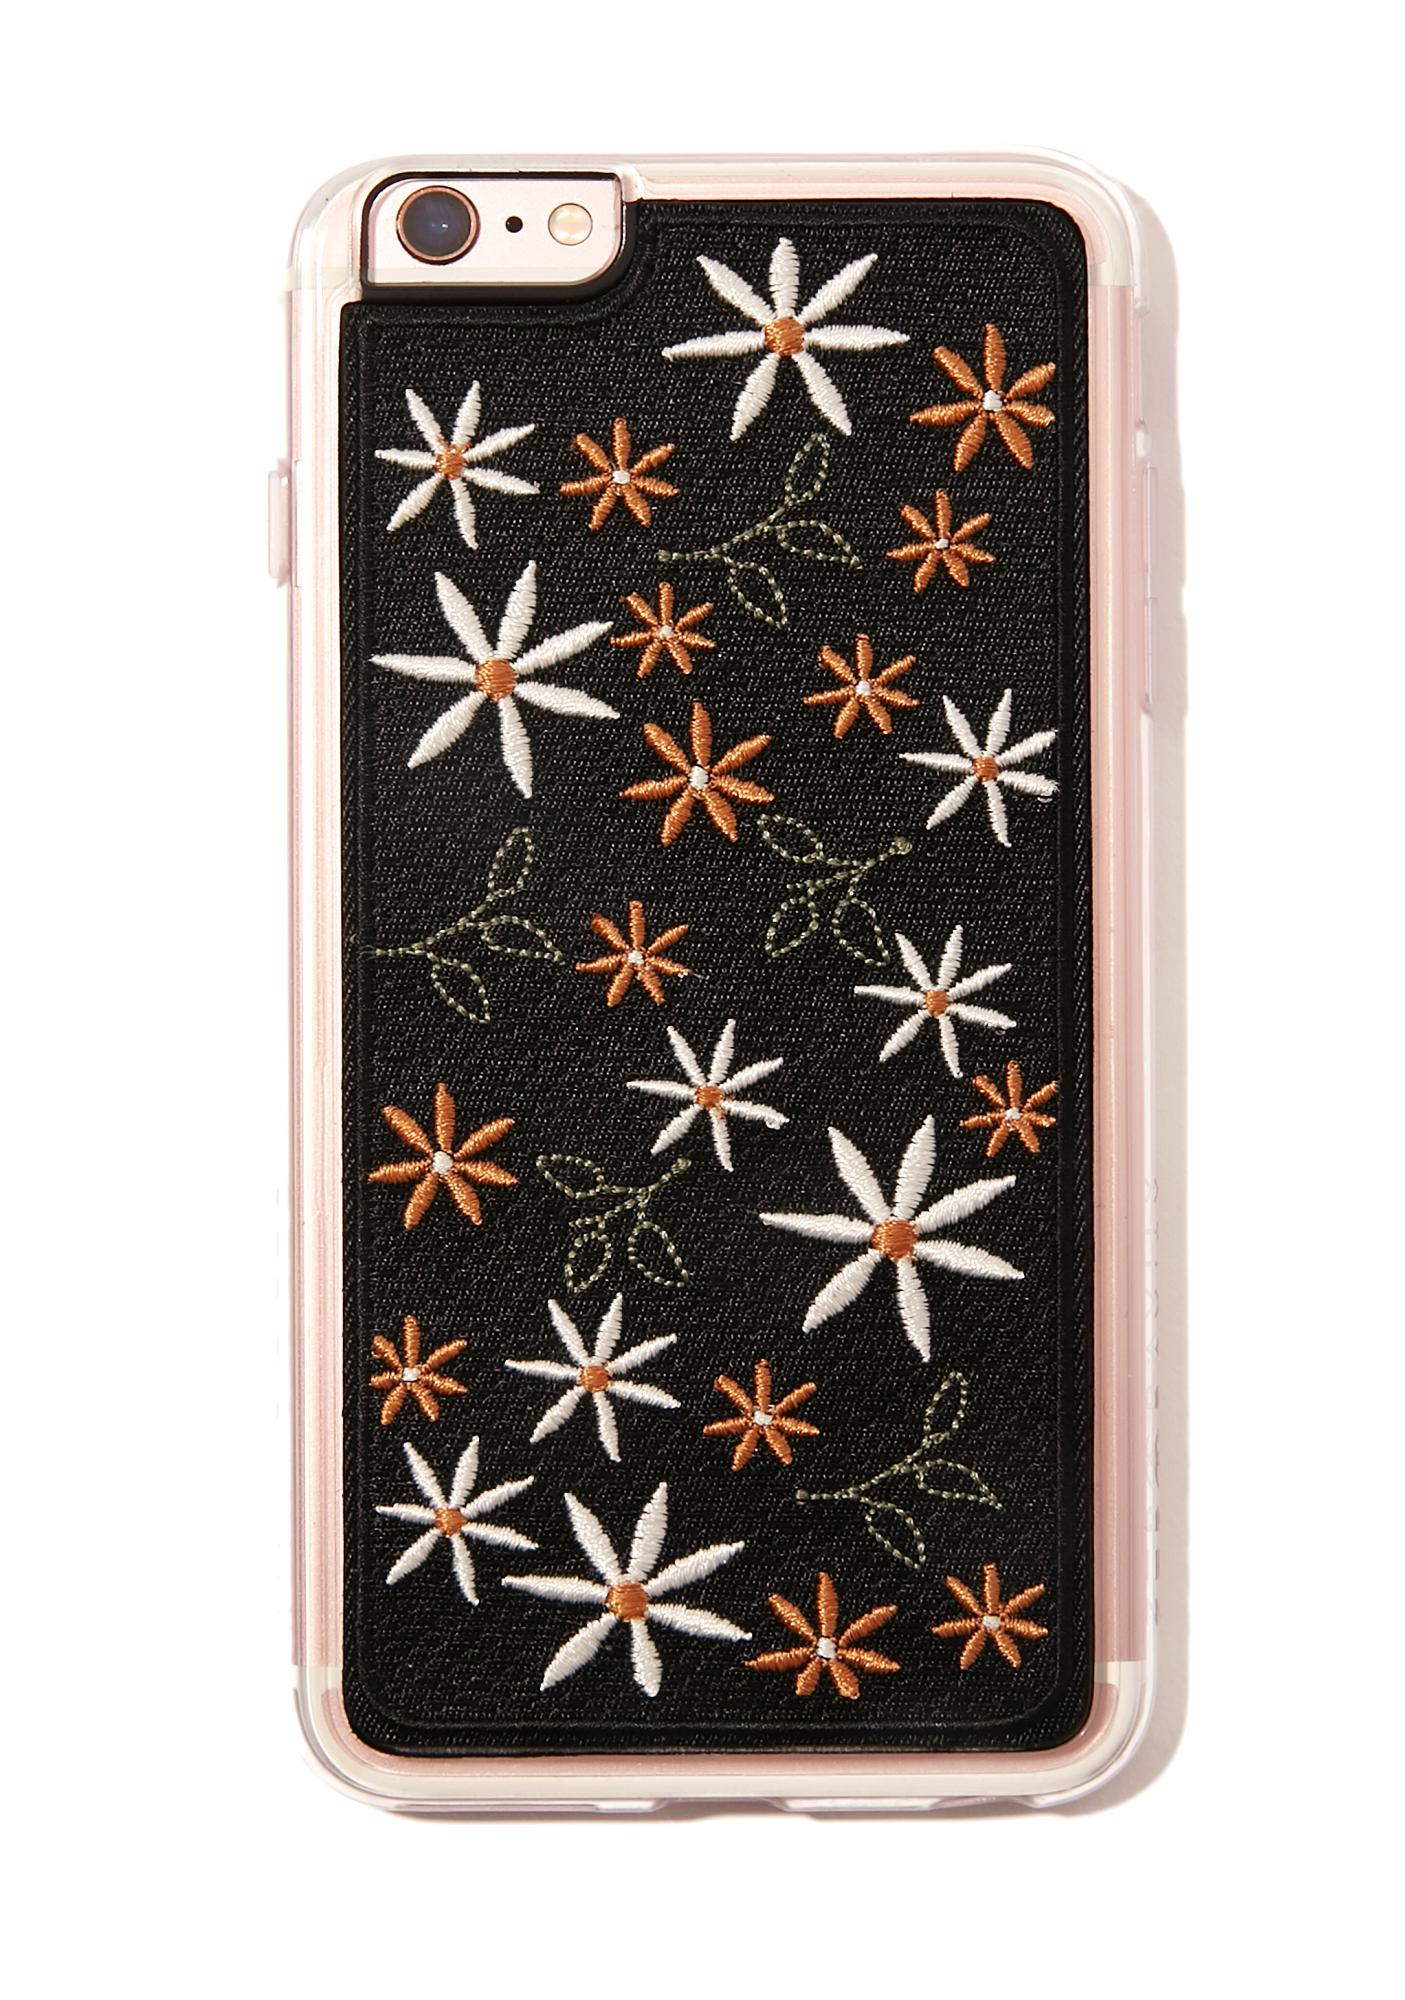 Zero Gravity Wander Embroidered iPhone Case